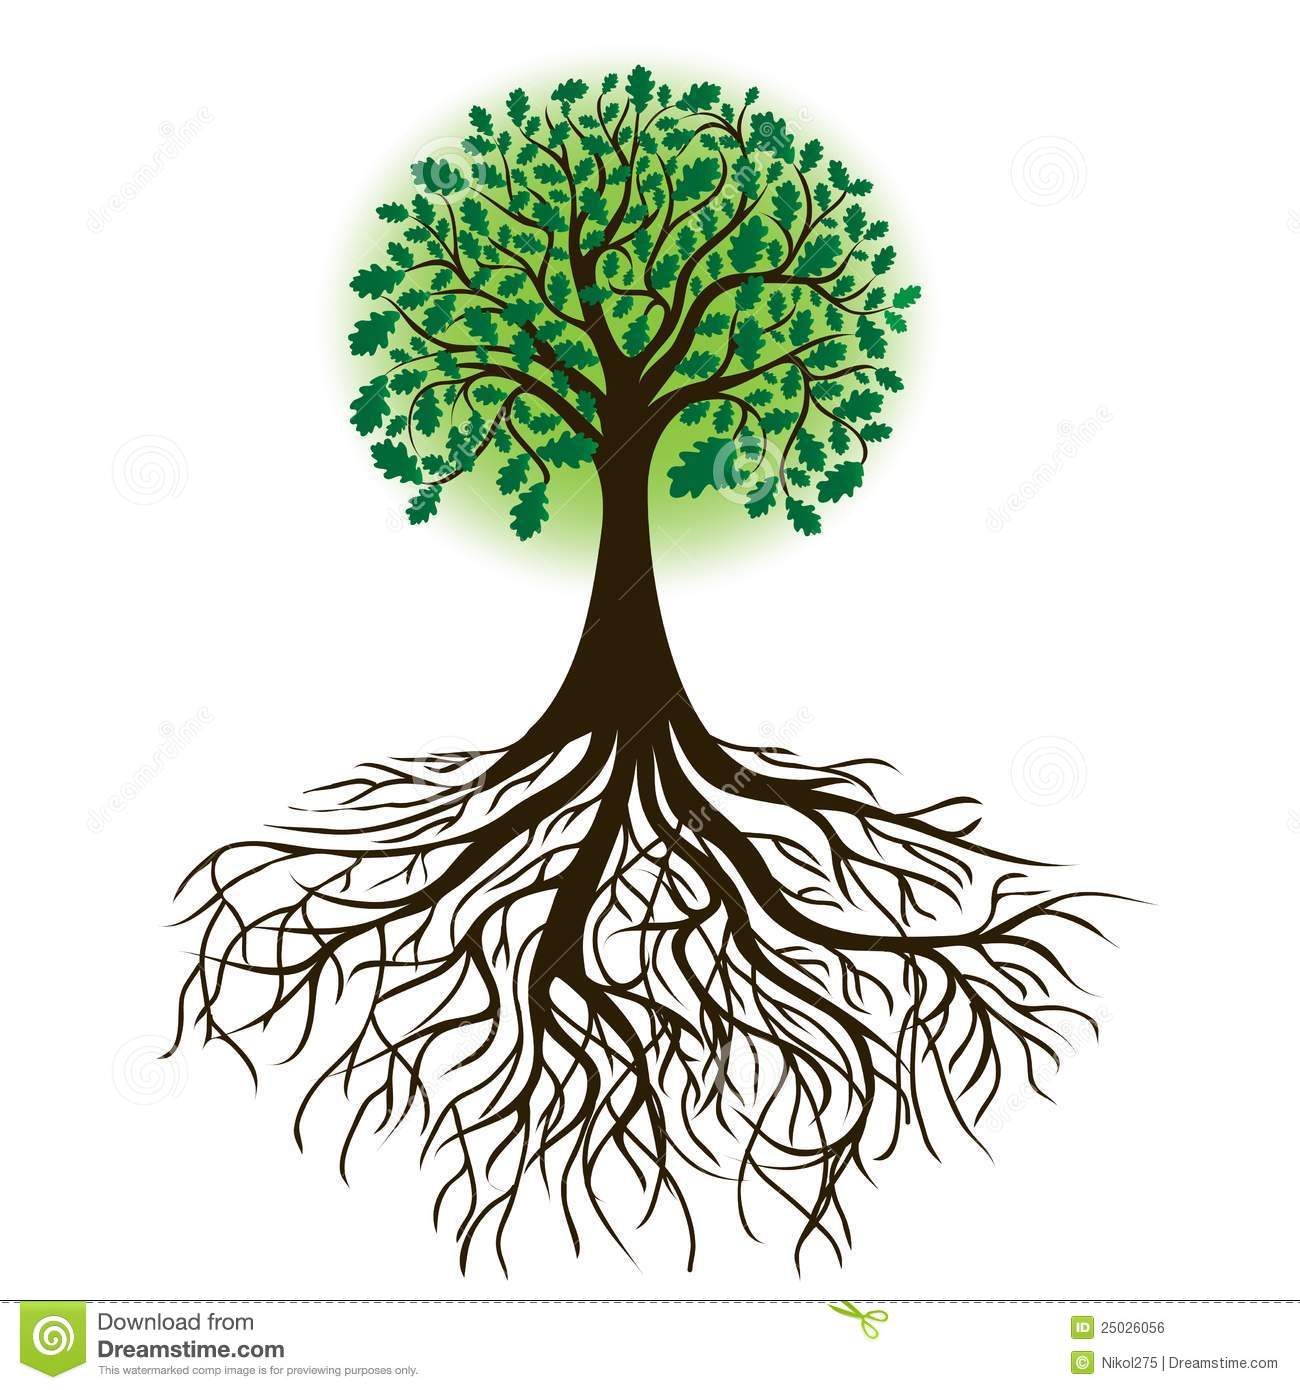 17 Free Vector Tree With Roots Images